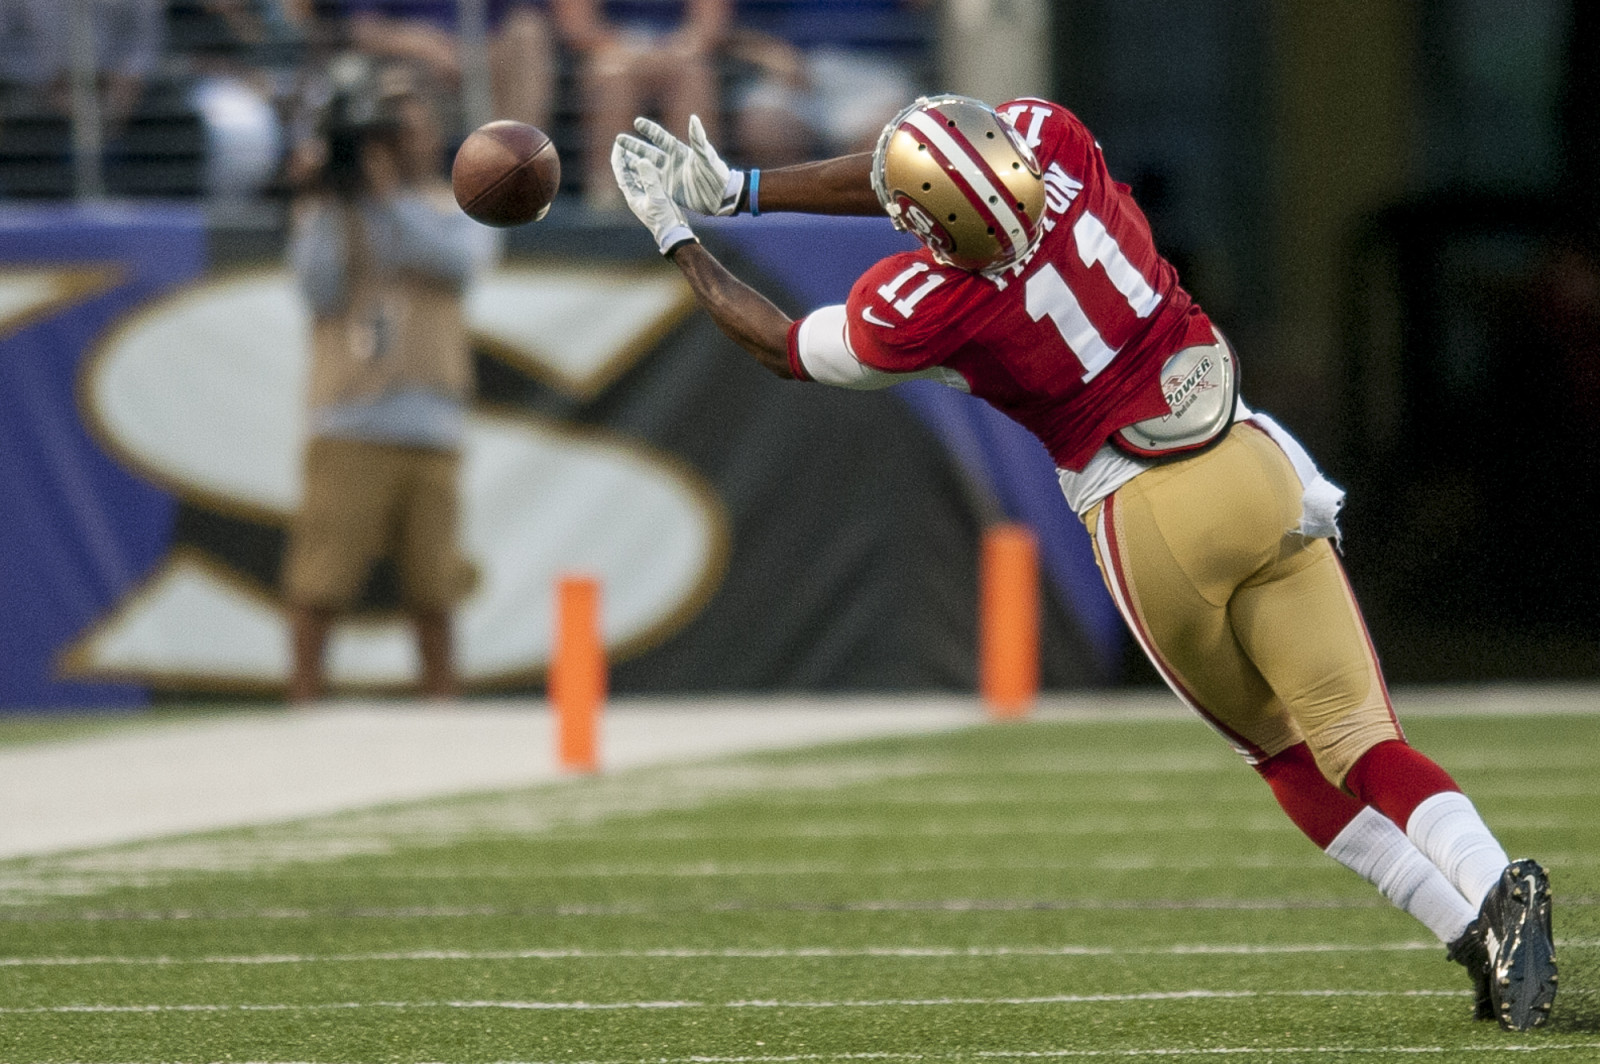 San Francisco 49ers' wide-receiver Quinton Patton has a pass slip though his hands in the first quarter against the Baltimore Ravens during their pre-season game at M&T Bank Stadium on August 7, 2014 in Baltimore, Maryland. UPI/Pete Marovich